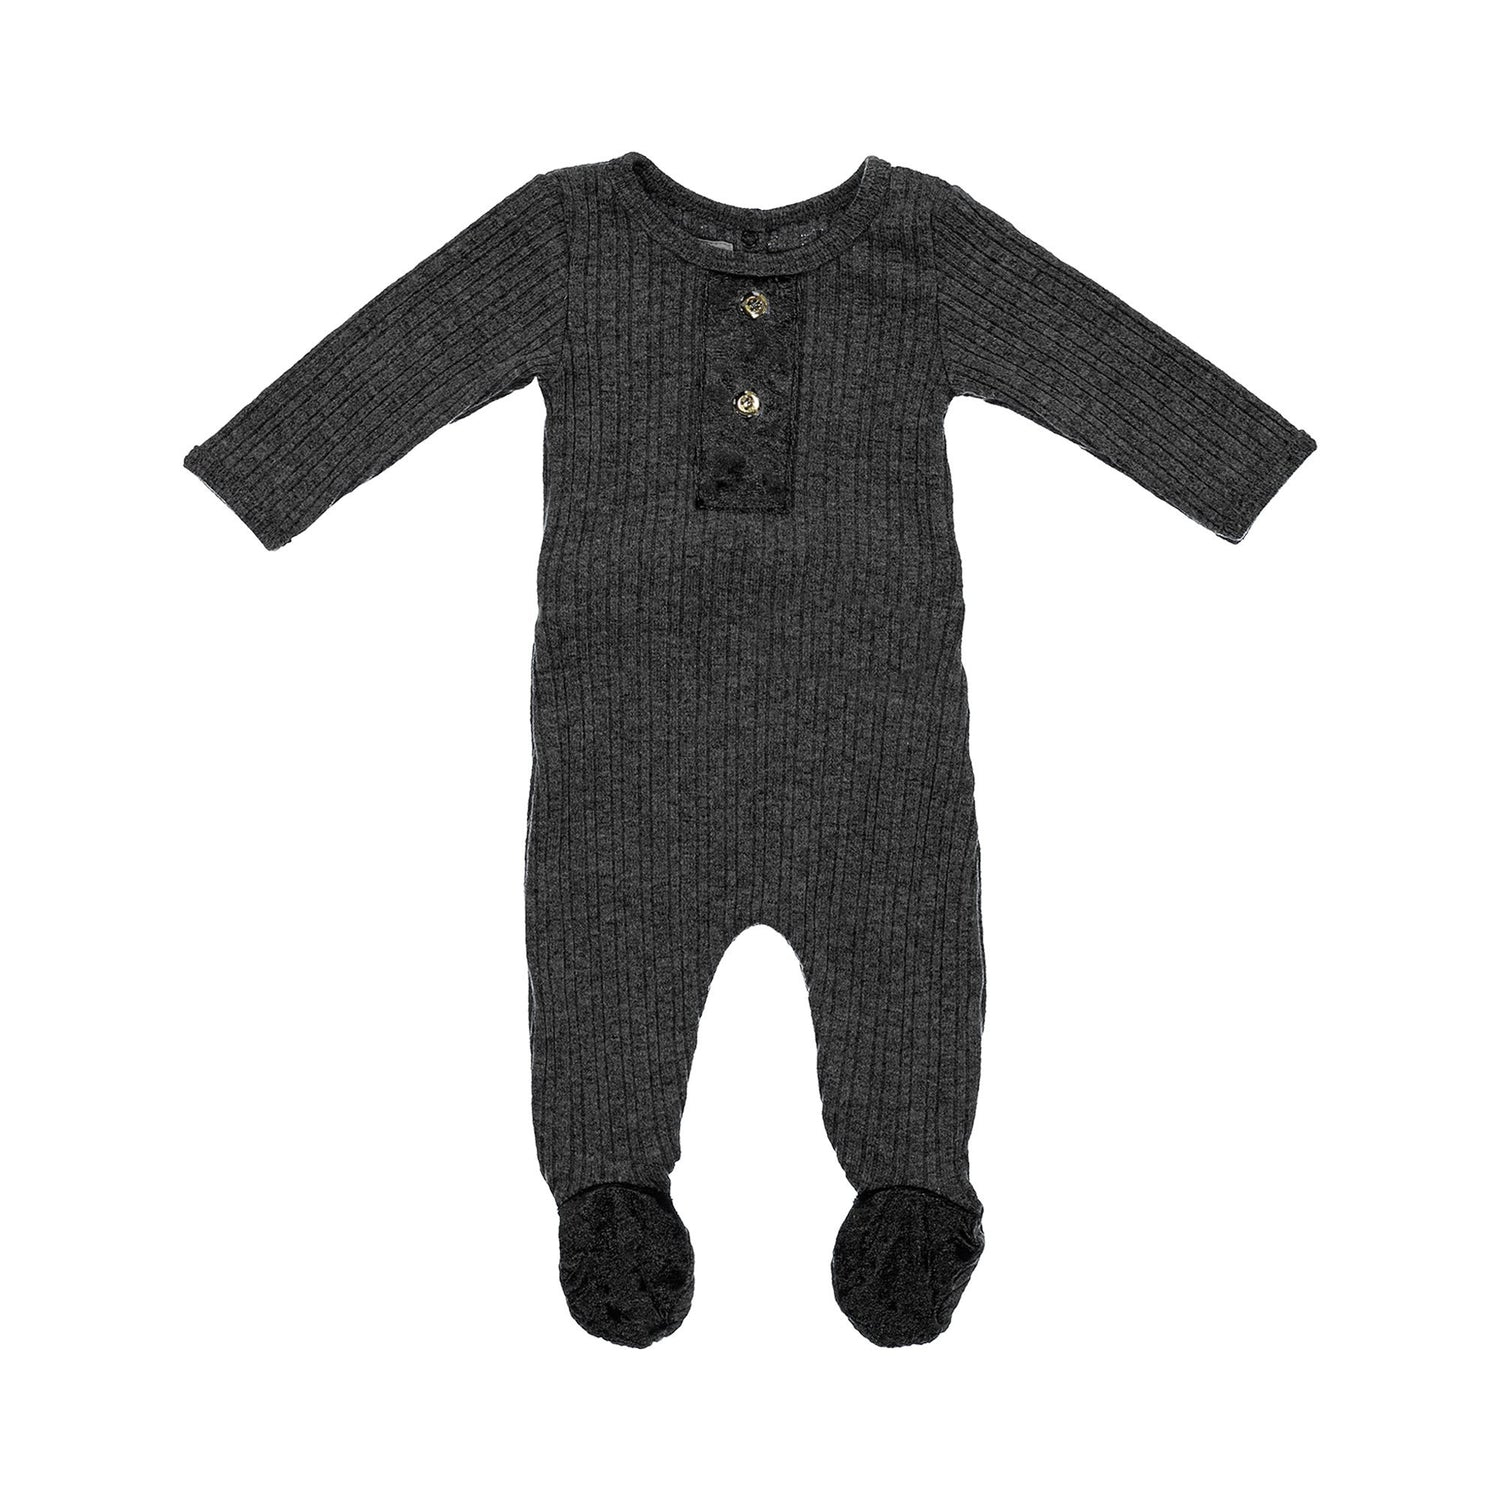 Velour Ribbed Footie Maniere Accessories Black 3 Month